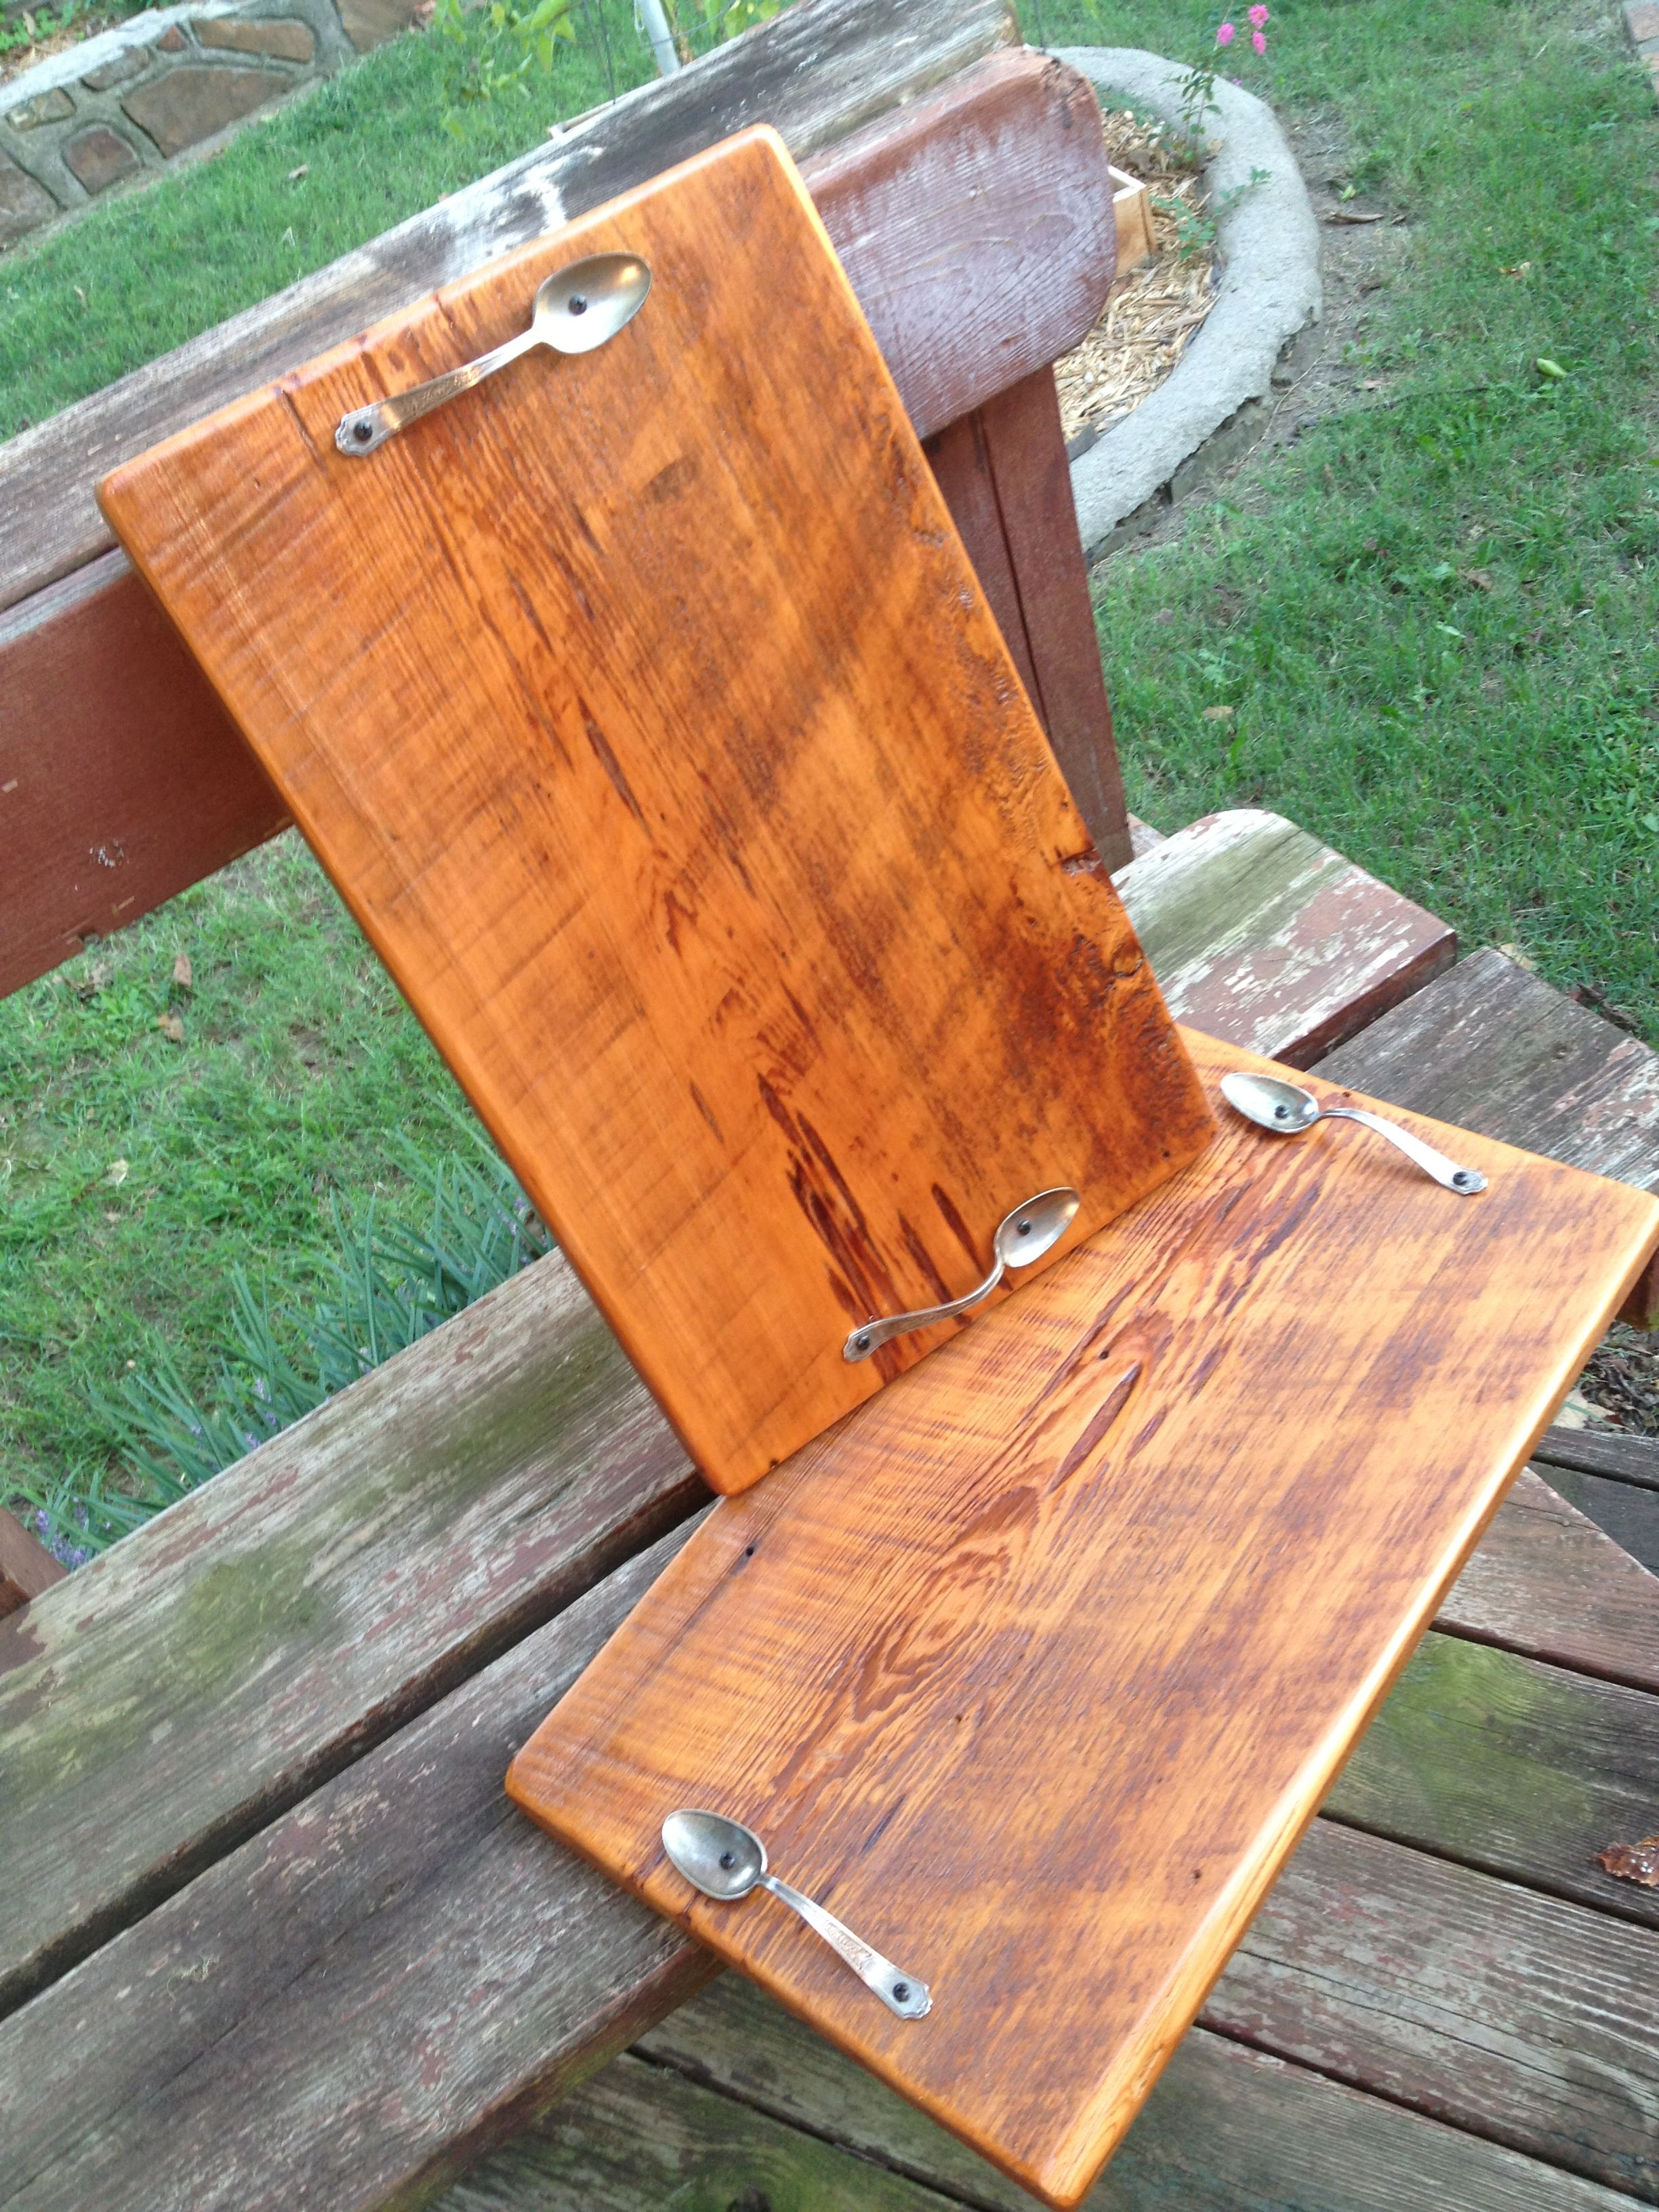 Reclaimed Barn Wood Serving Trays I Sooo Want To Make These